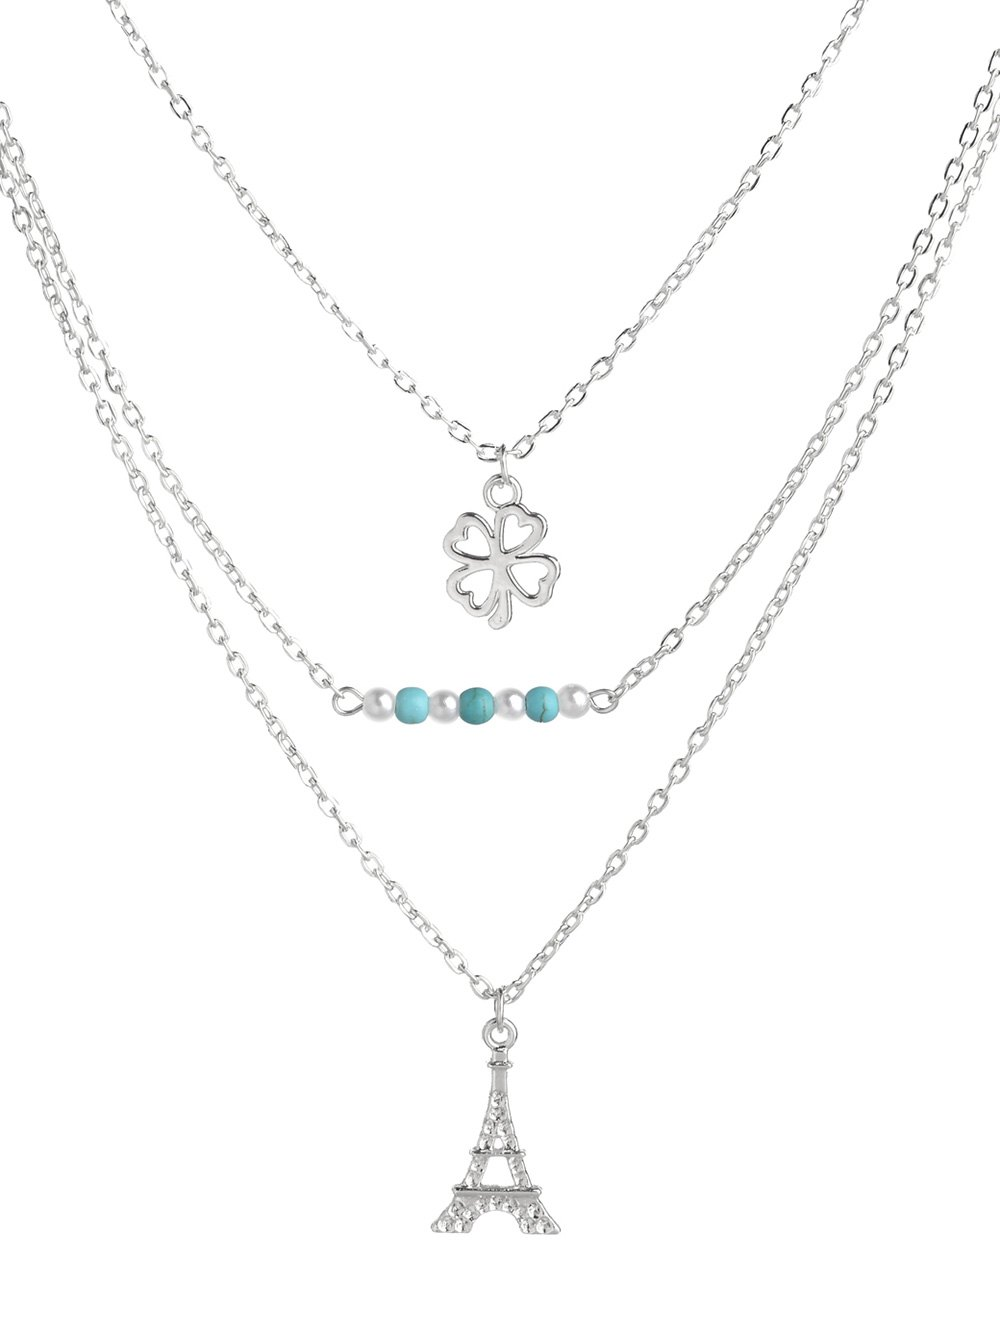 Clover Eiffel Tower Beads Layered Necklace